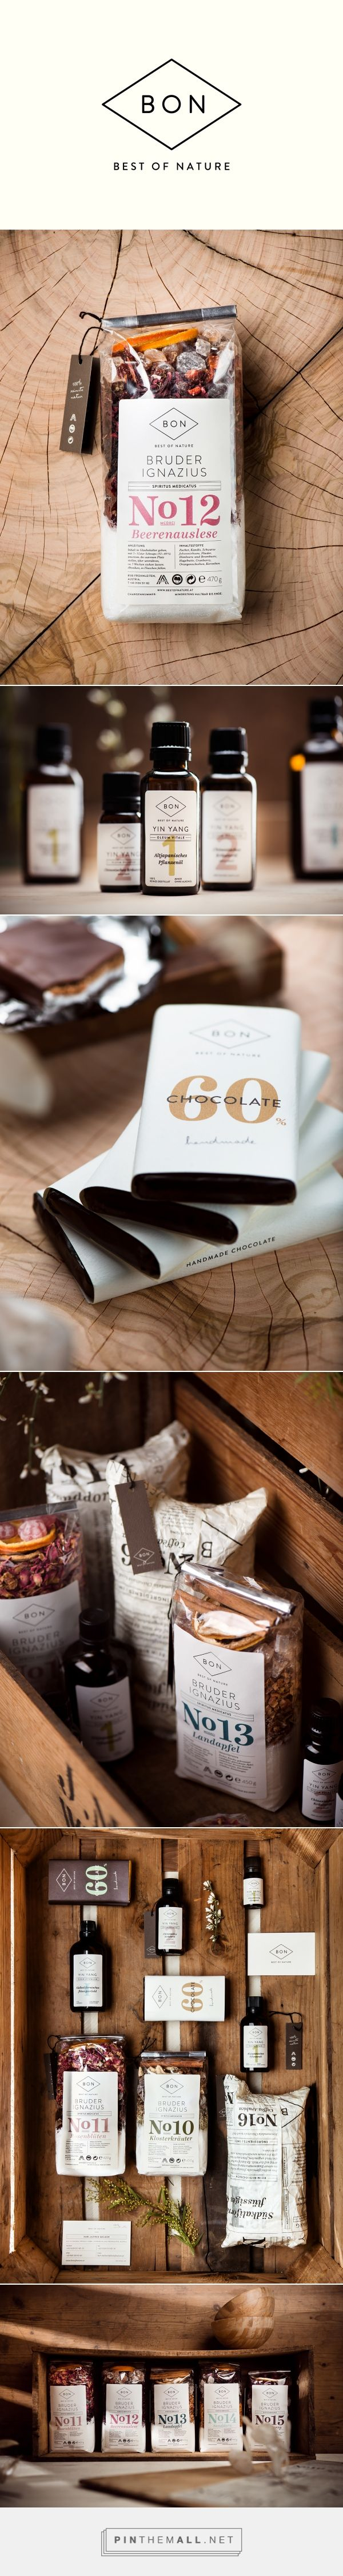 Best of Nature oils, herbal mixtures and essences by Moodley Brand Identity and Marie Zieger. Source: Behance. Pin curated by #SFields99 #packaging #design